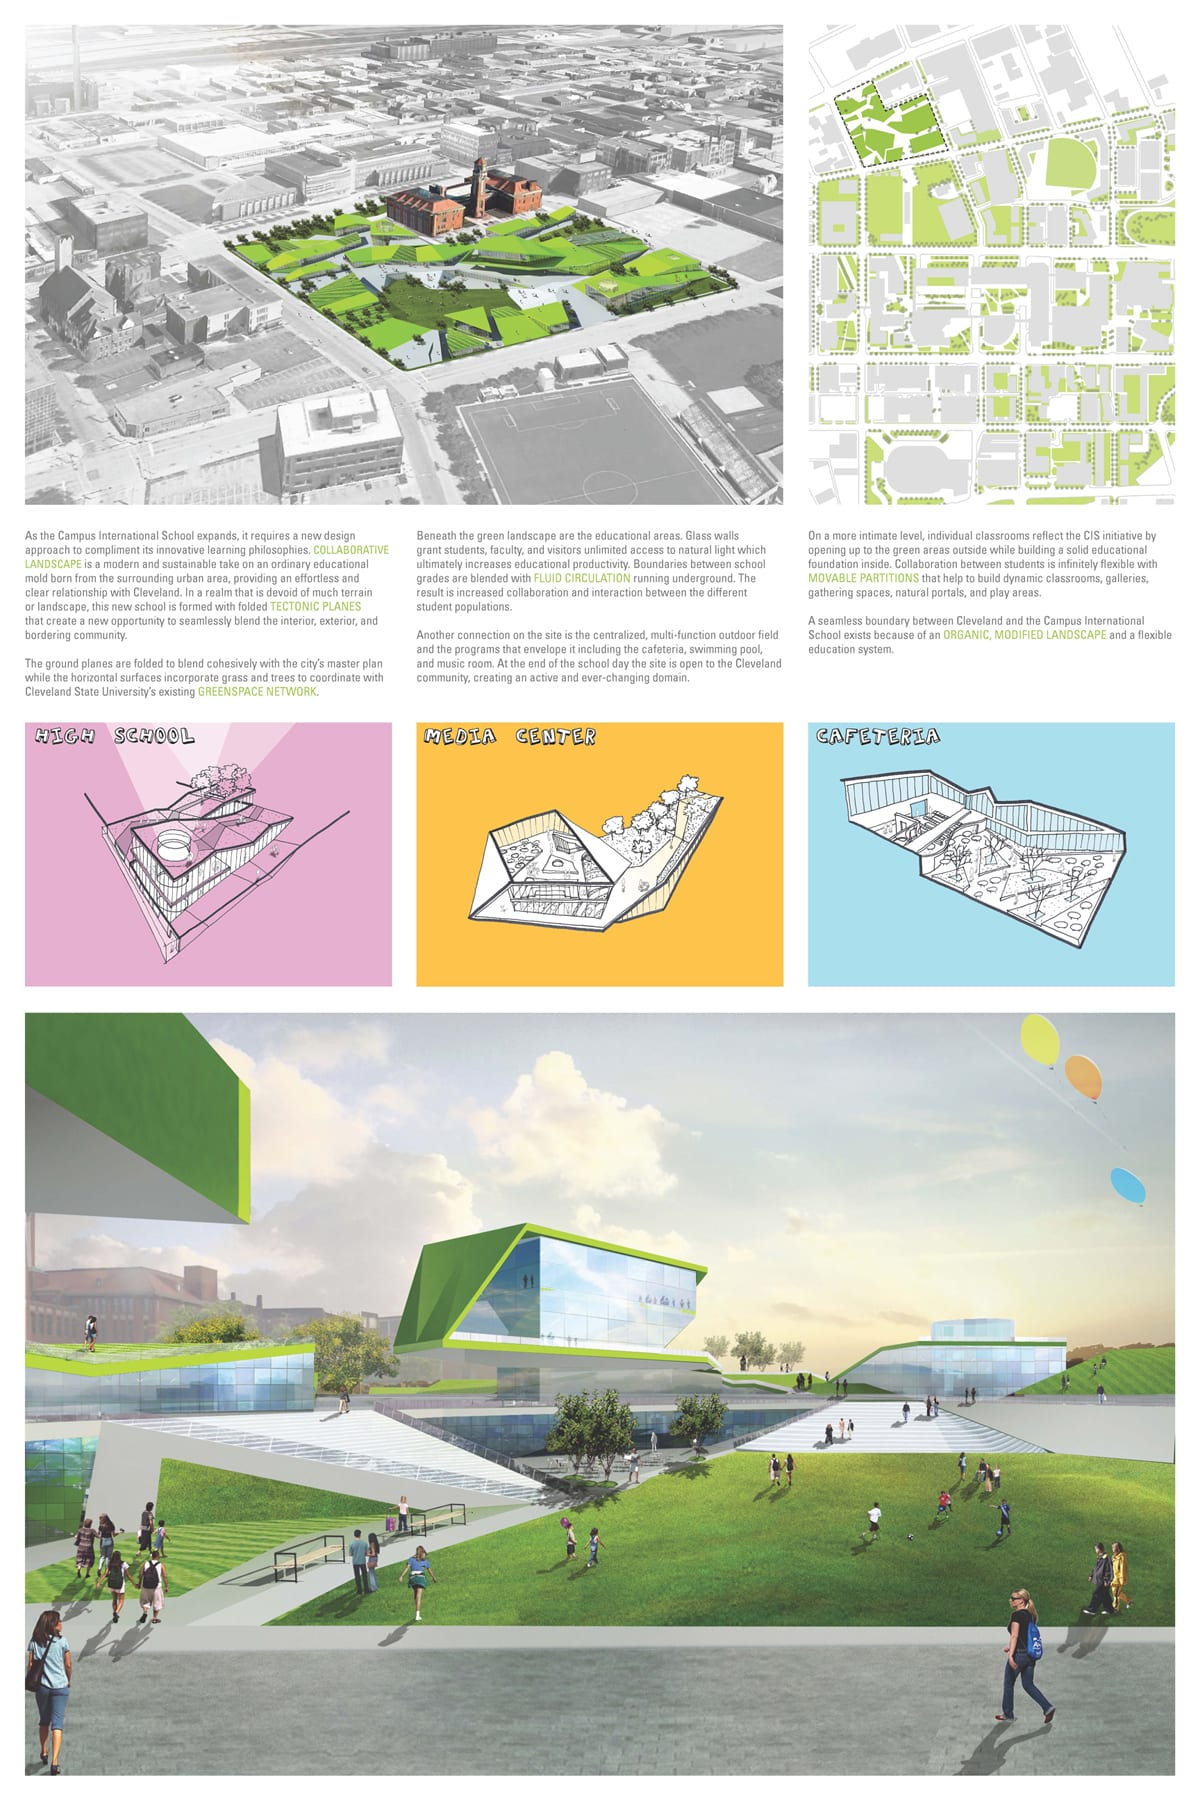 hon3-cleveland design competition - 11091 - right